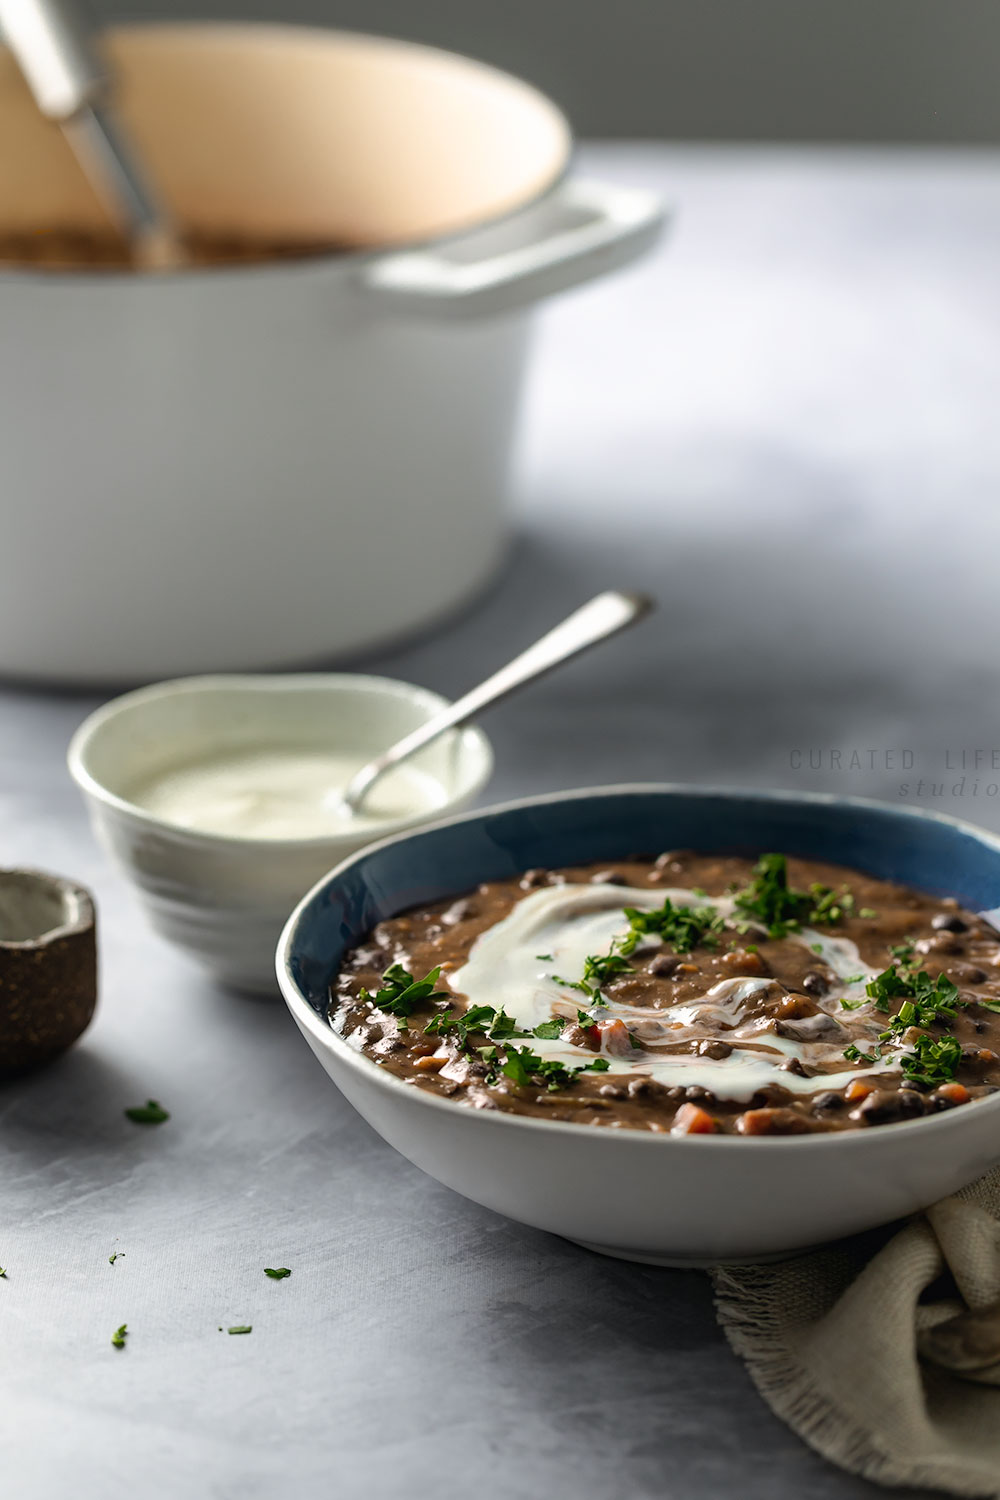 This Black Bean Soup recipe is not only filling, it's healthy, vegan and gluten free! Simple to prepare and perfect comfort food for dinner!  (Although inspired by the Hungarian recipe, included in this post are variations to transform this recipe into a Mexican or Cuban Soup Recipe!)  #Black-Bean #Soup #Simple #Easy #Vegan #Healthy #Dinners #Comfort-Foods #Gluten-Free #Mexican #Cuban #Hungarian